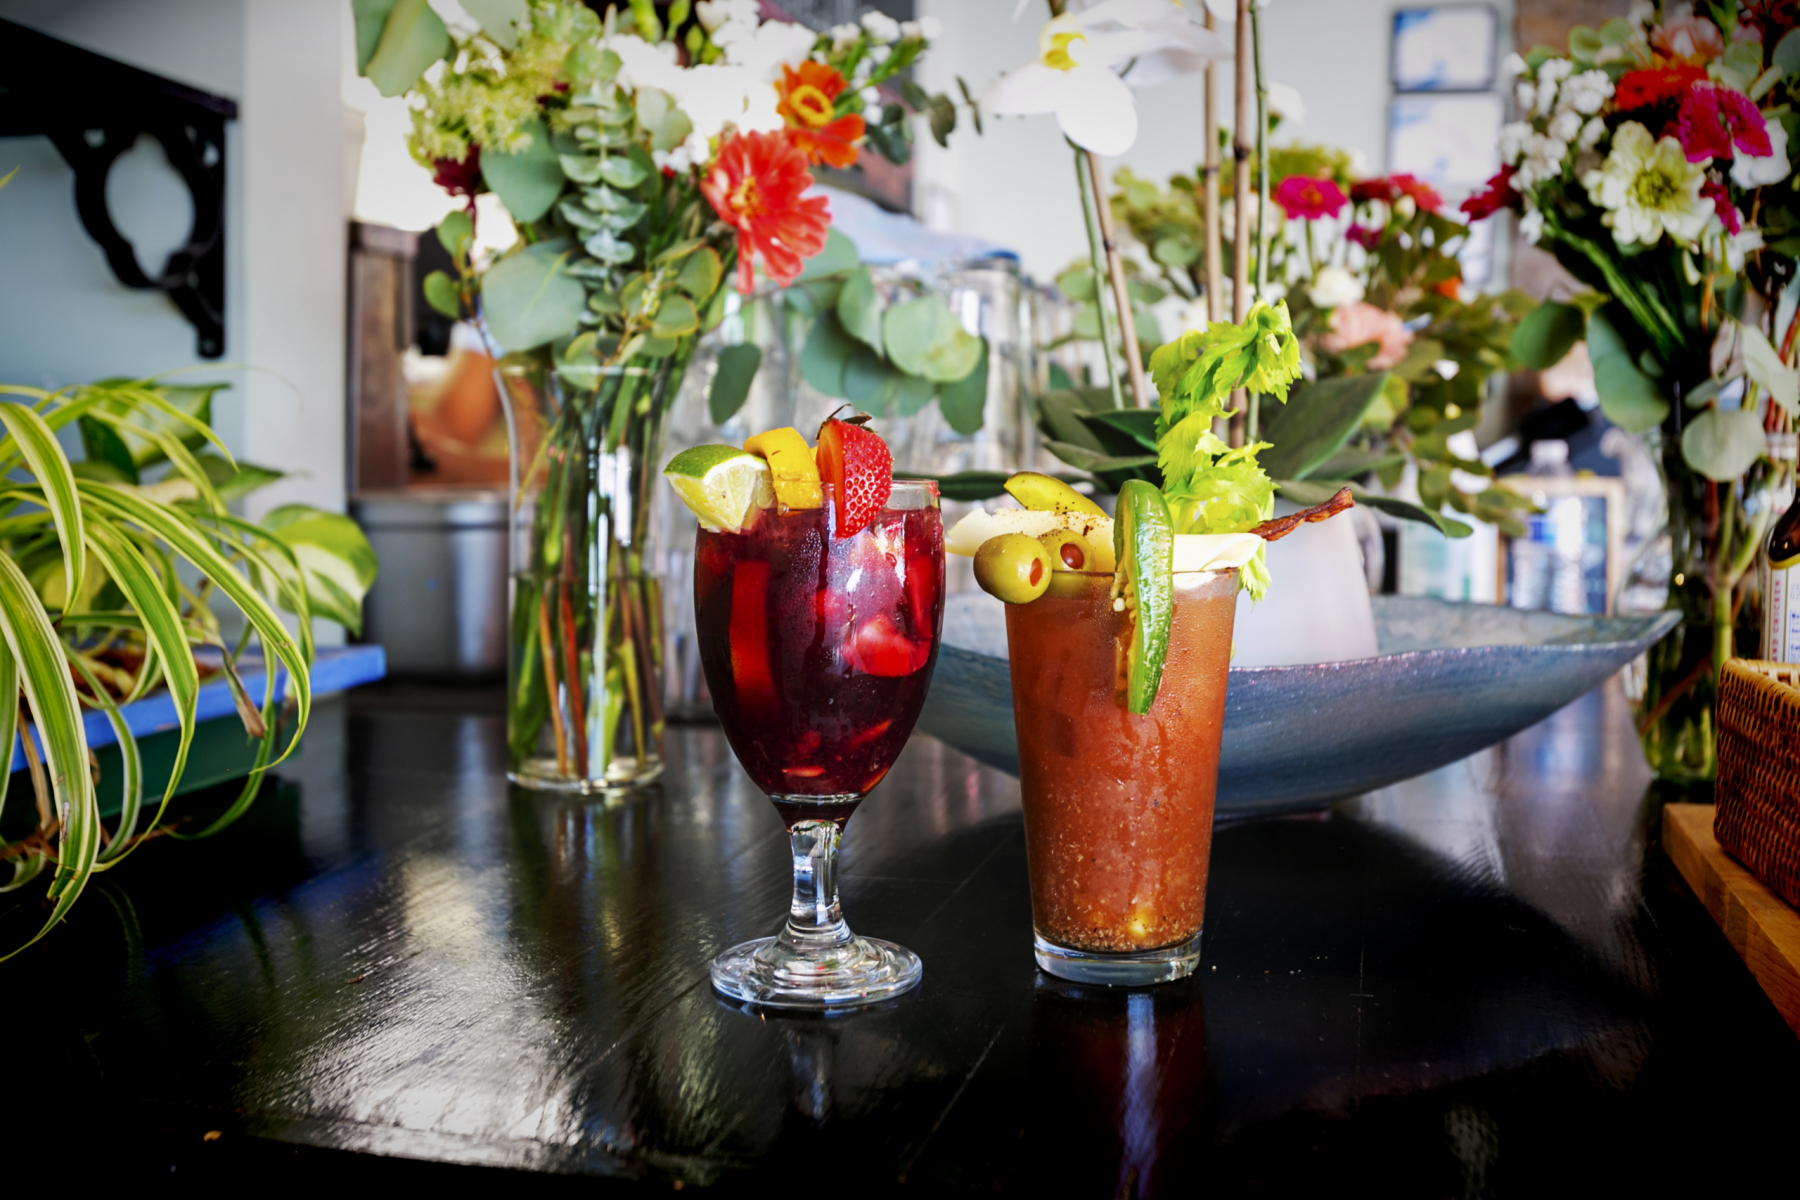 sangria_bloodymary-scaled